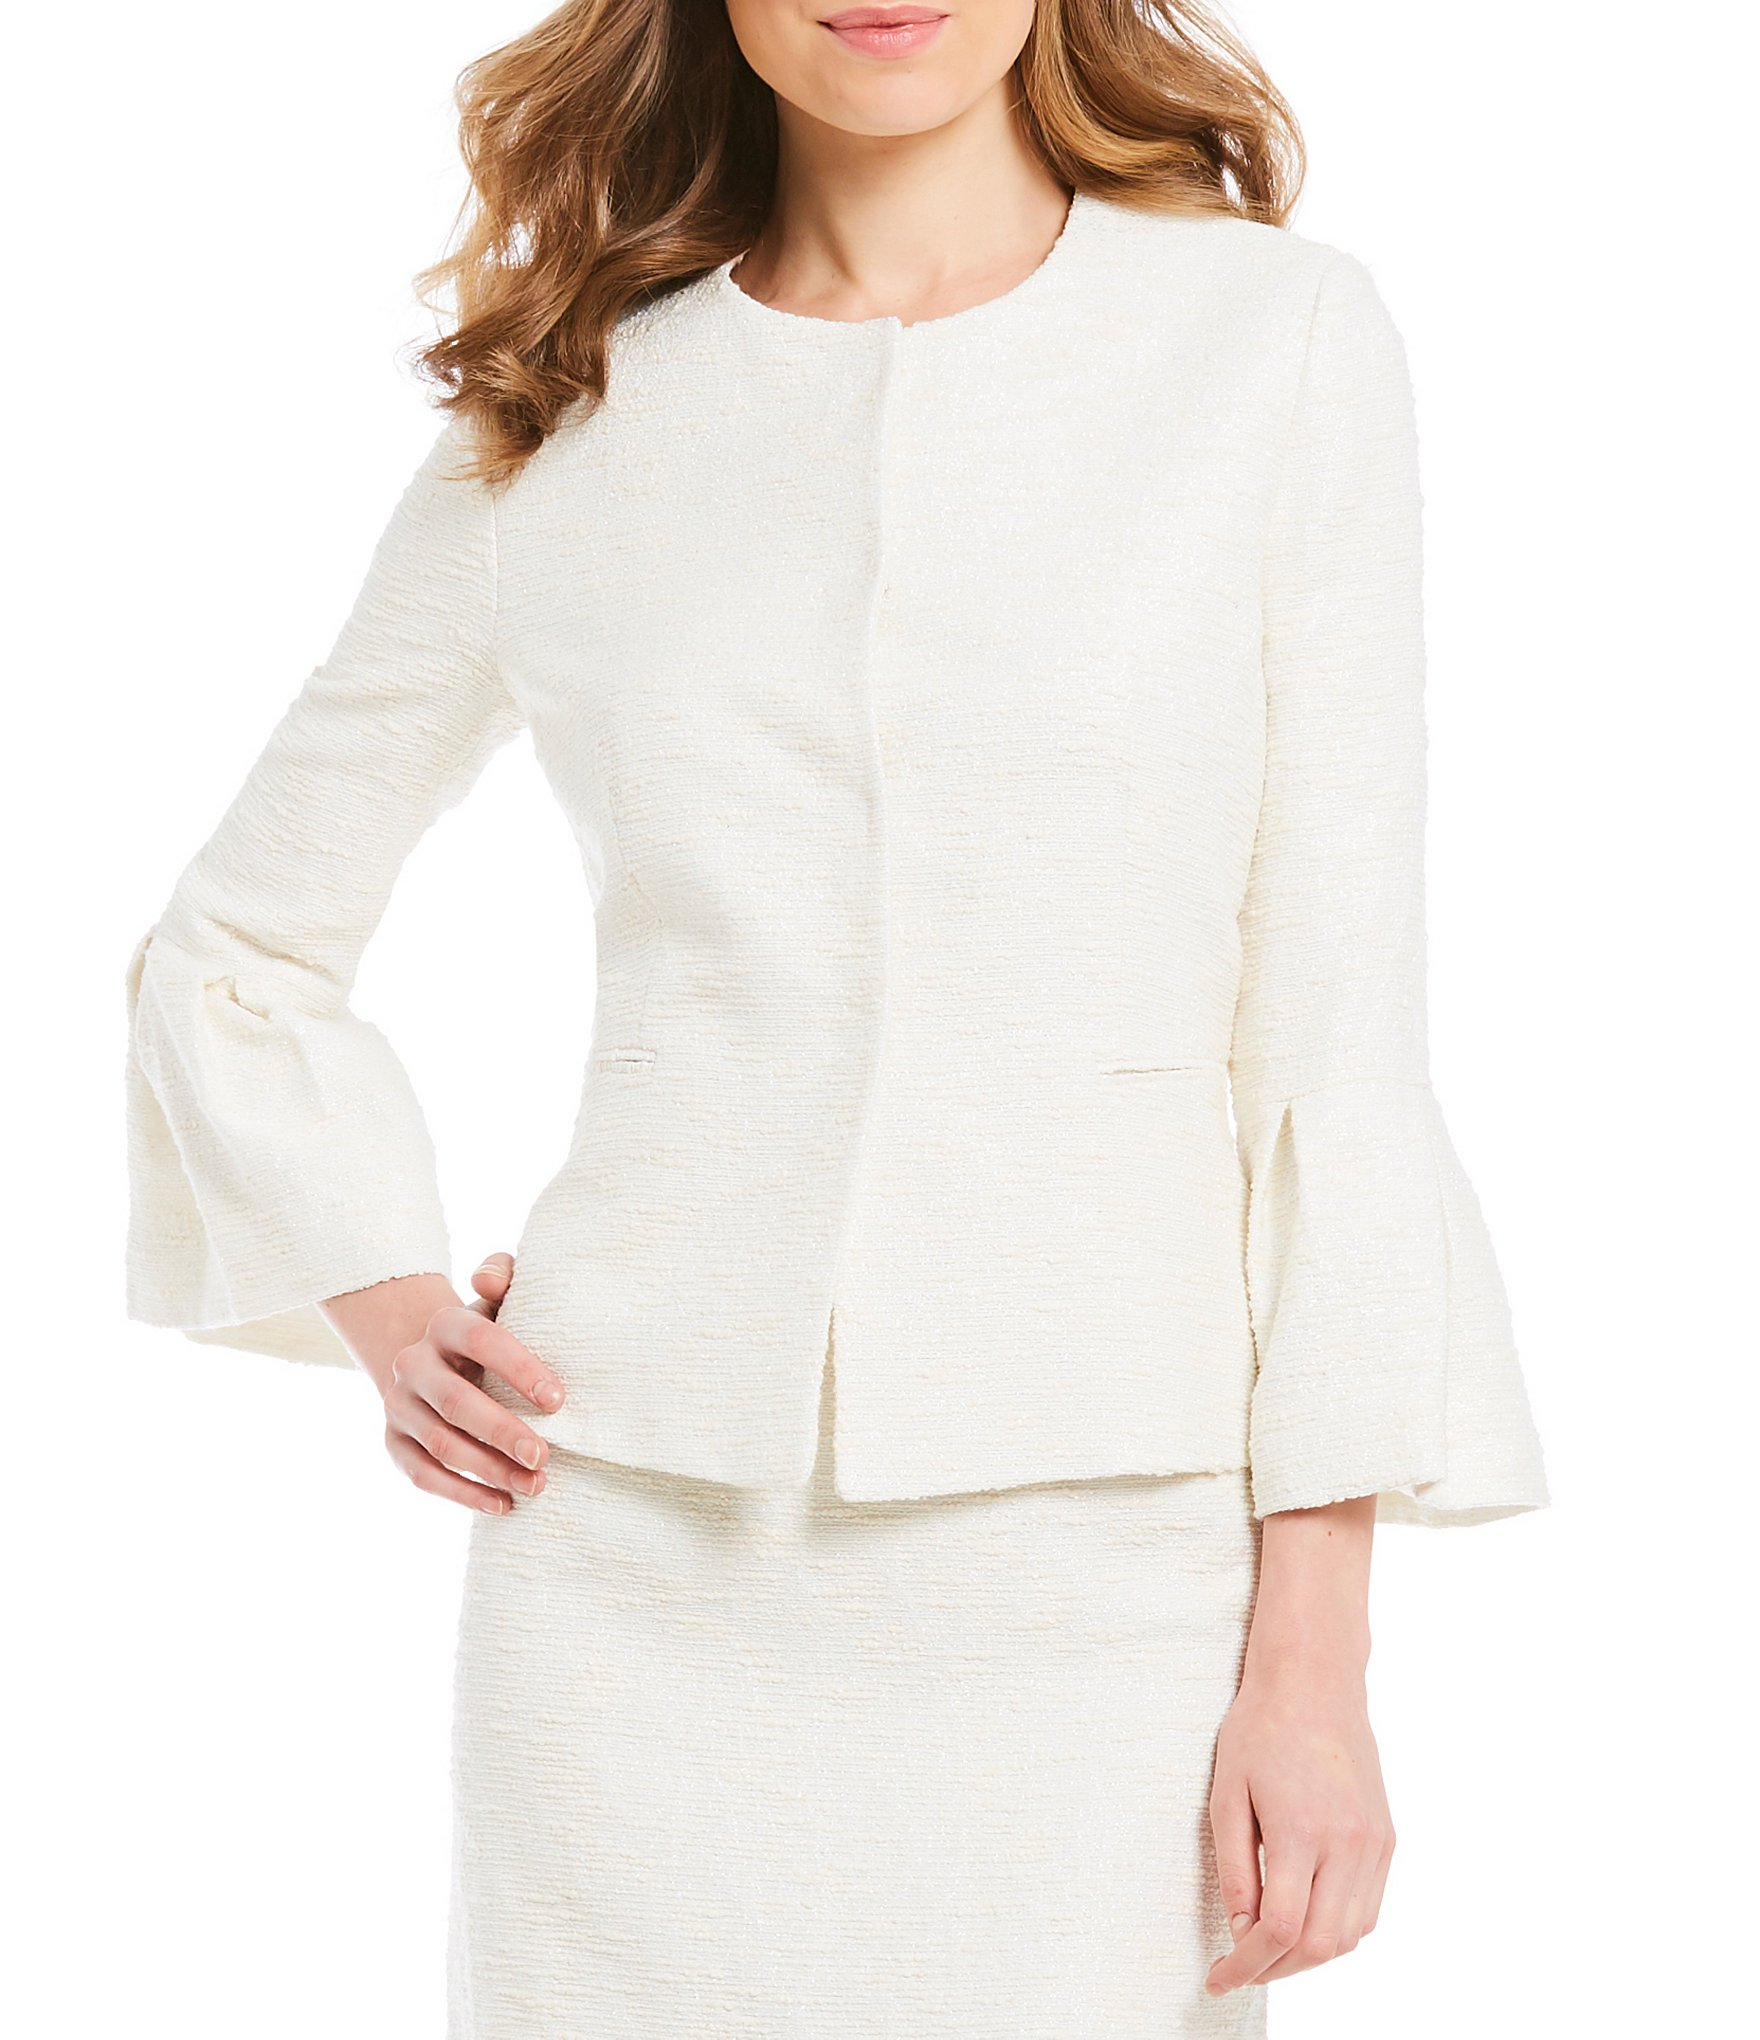 Make a style statement this season with a white jacket